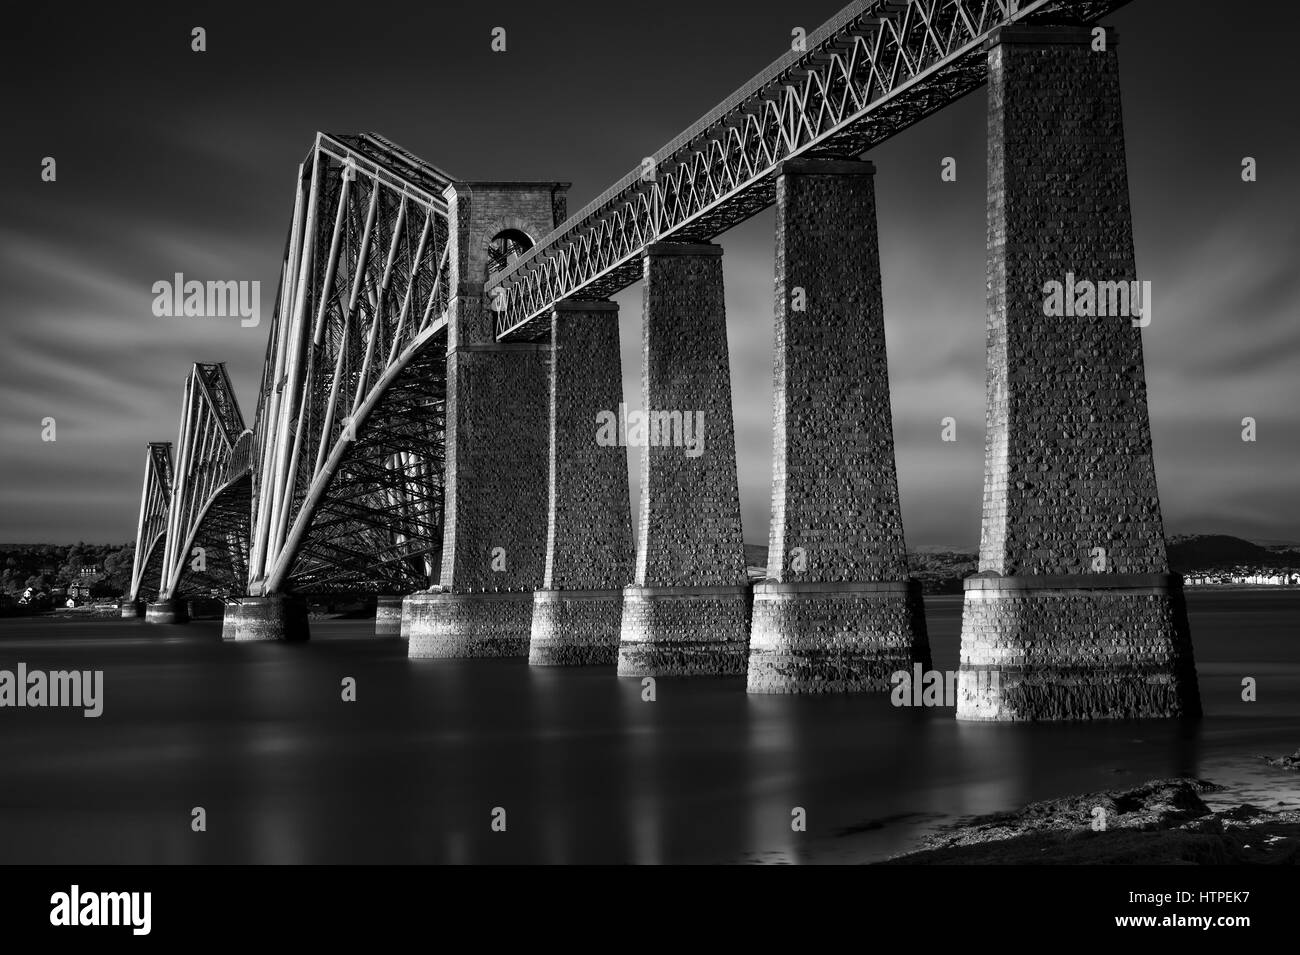 Black & white image of Firth of Forth Rail Bridge in South Queensferry, Edinburgh, Scotland - Stock Image